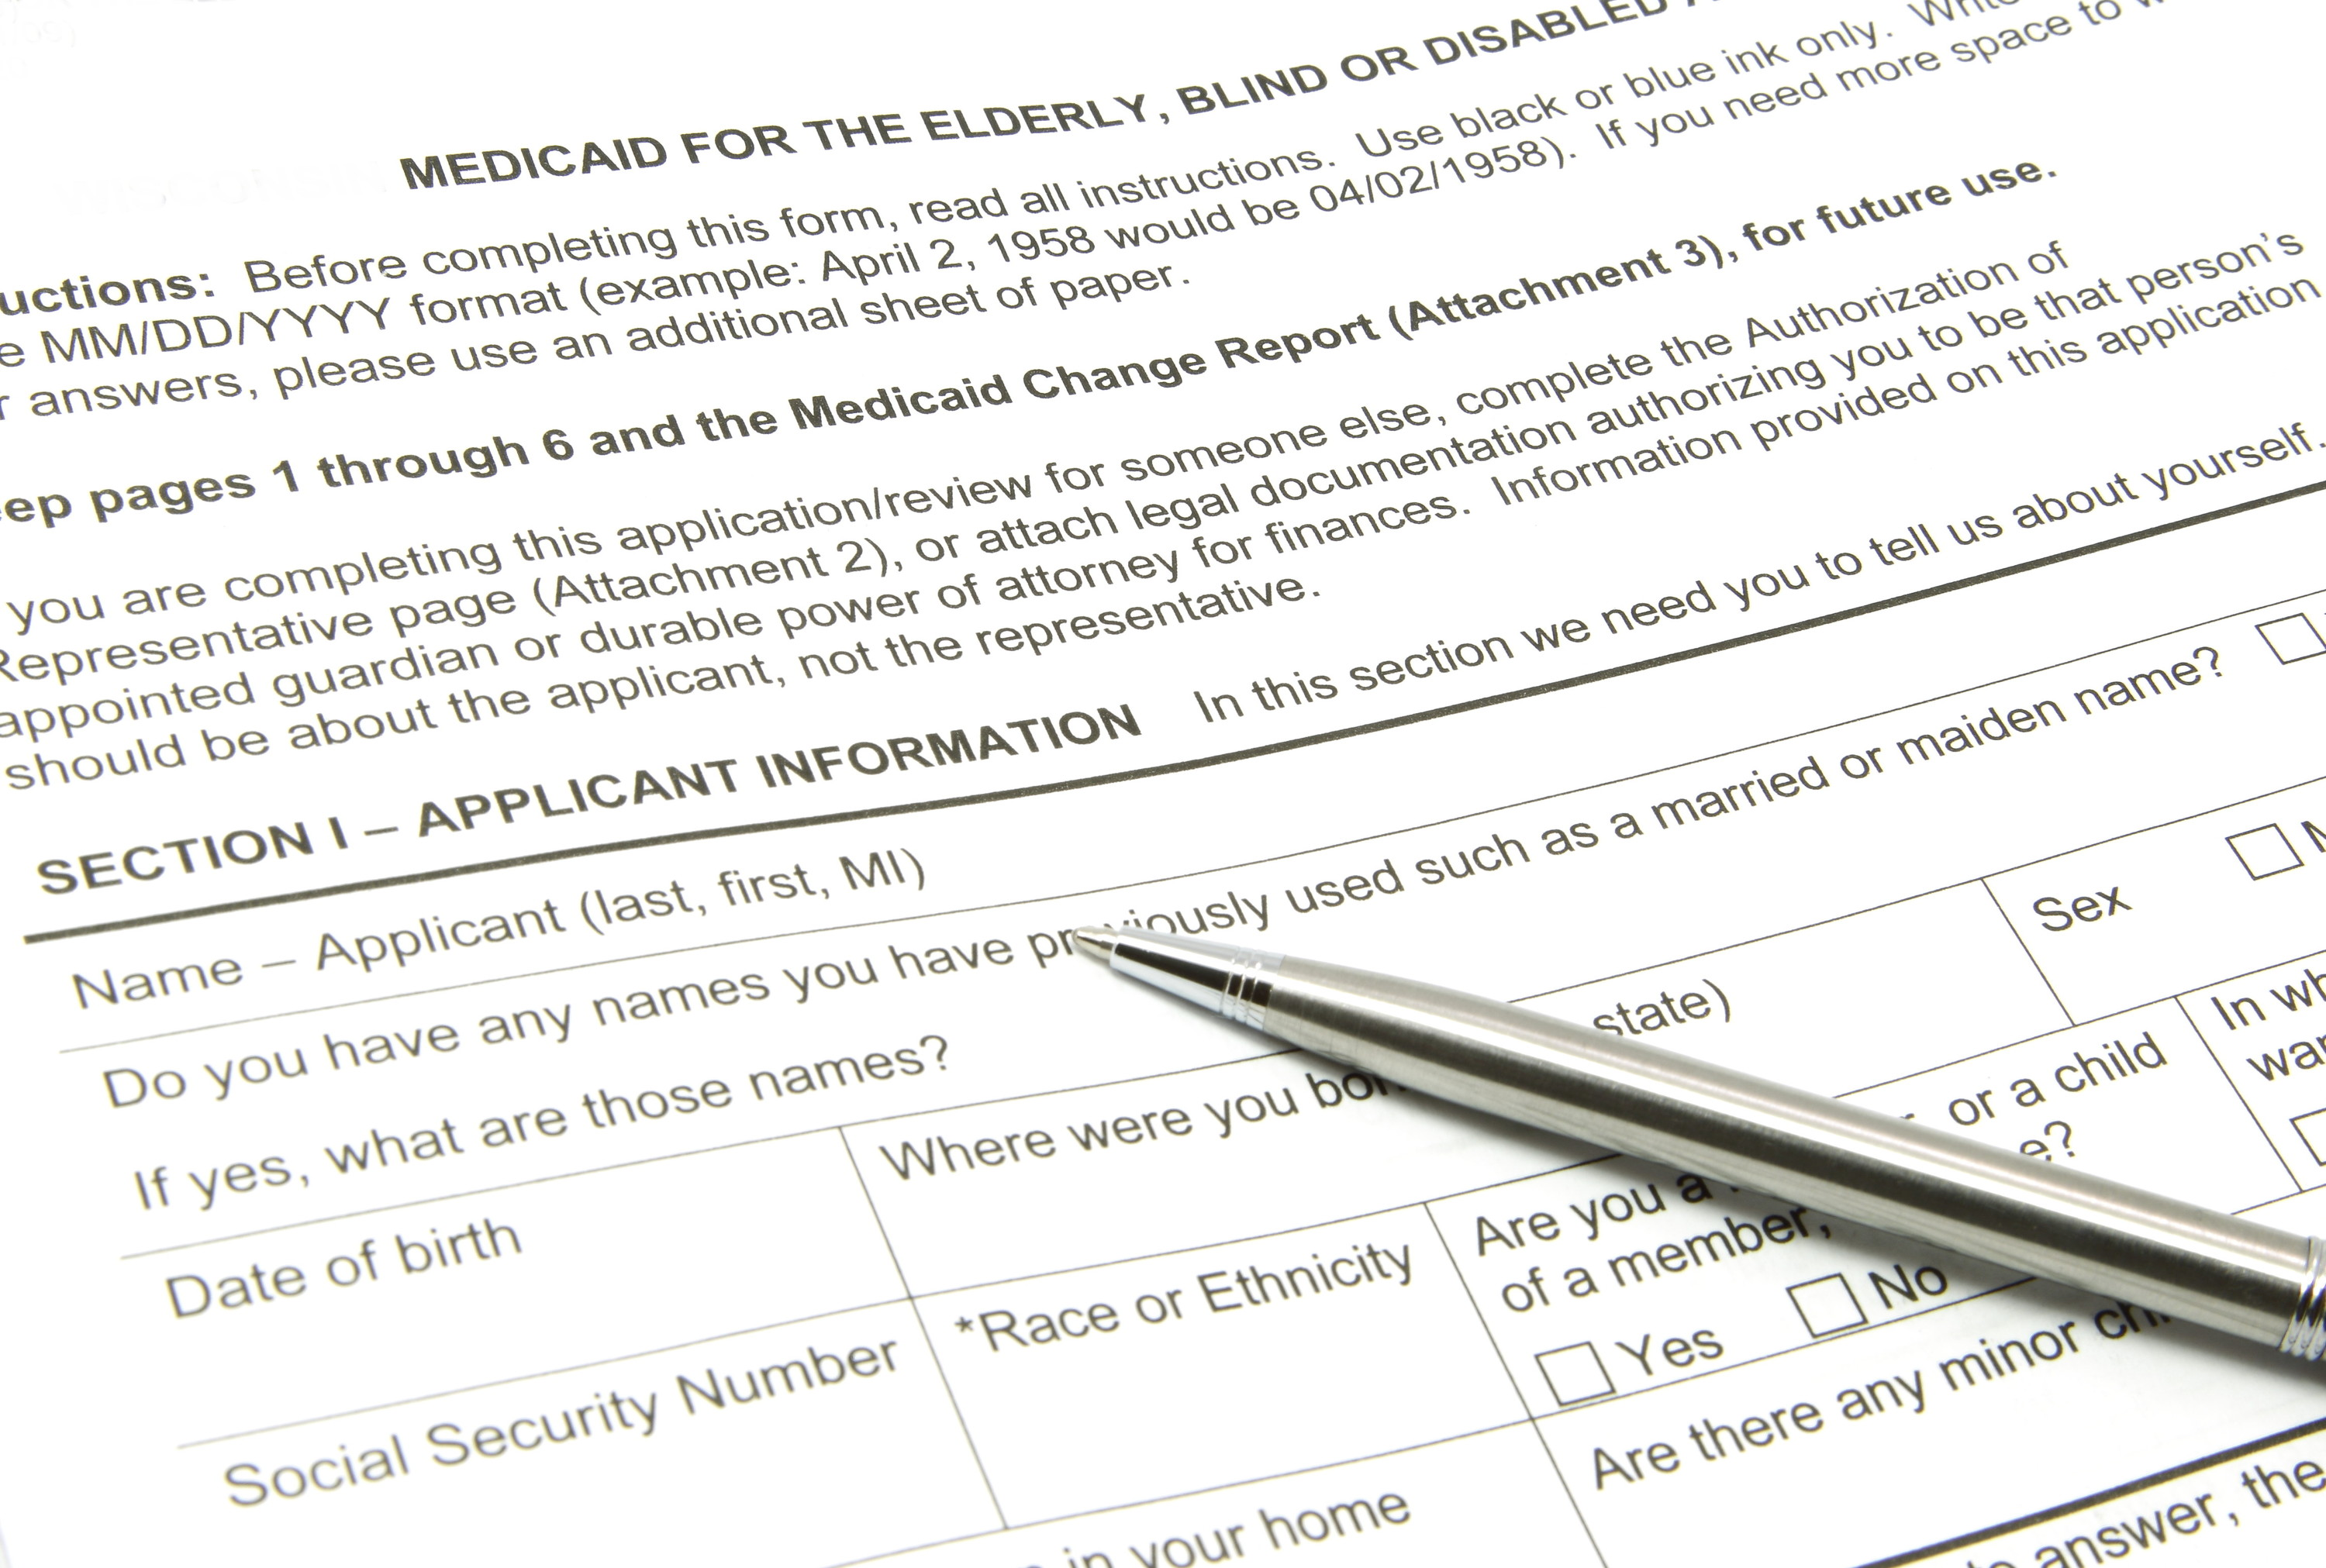 Nys Medicaid Prior Authorization Form   Find And Download Our Hundreds Of  Fresh And Elegant Form Templates. We Hand Picked All Nys Medicaid Prior ...